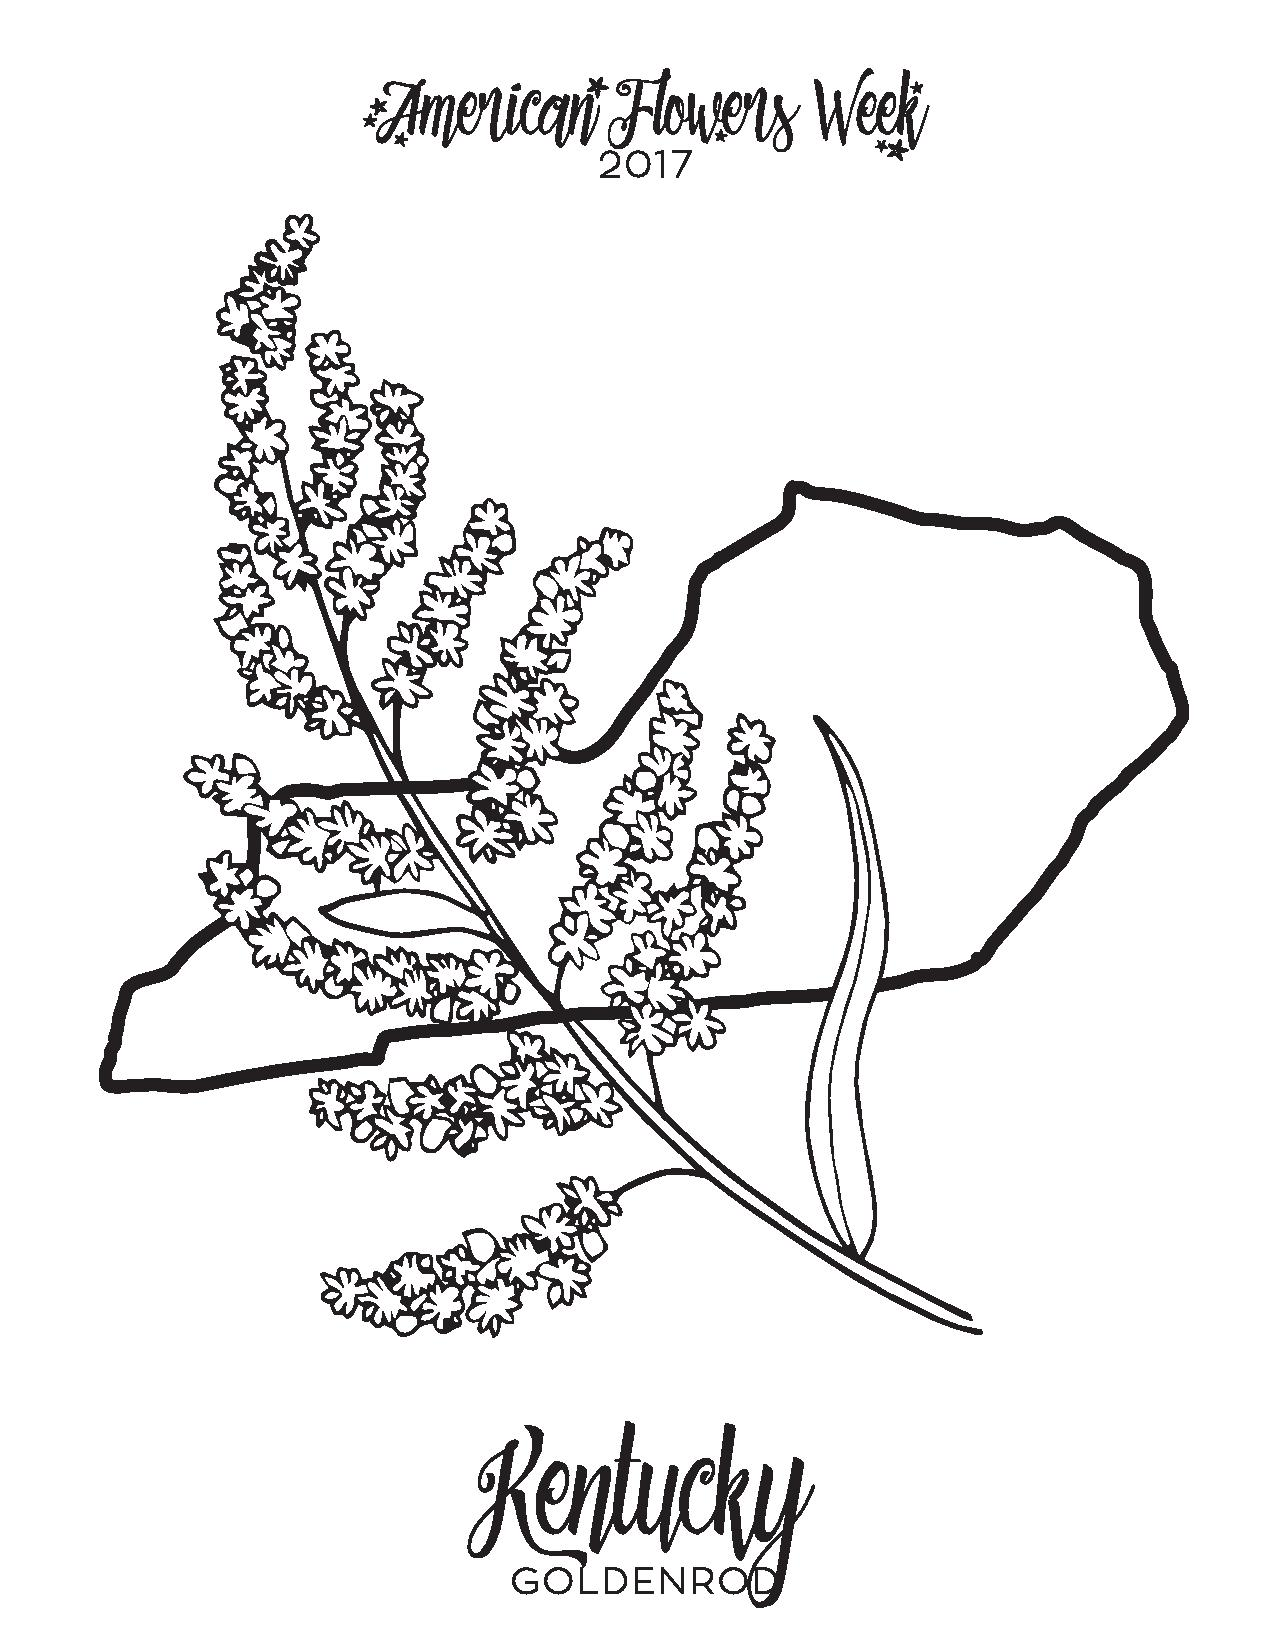 50 state flowers free coloring pages american flowers week for Kentucky state flower coloring page